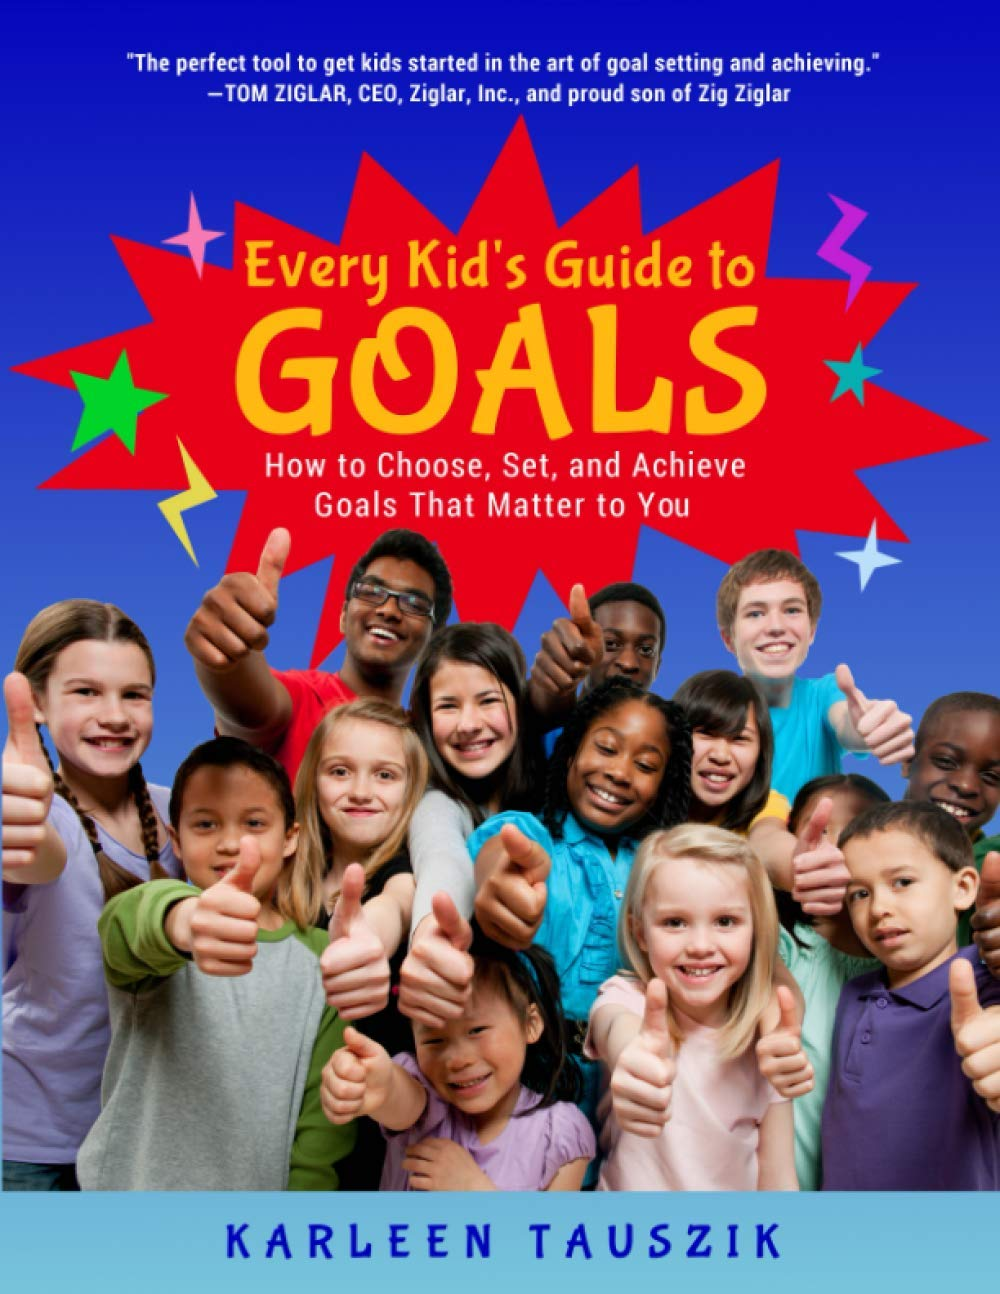 Every Kid's Guide to Goals